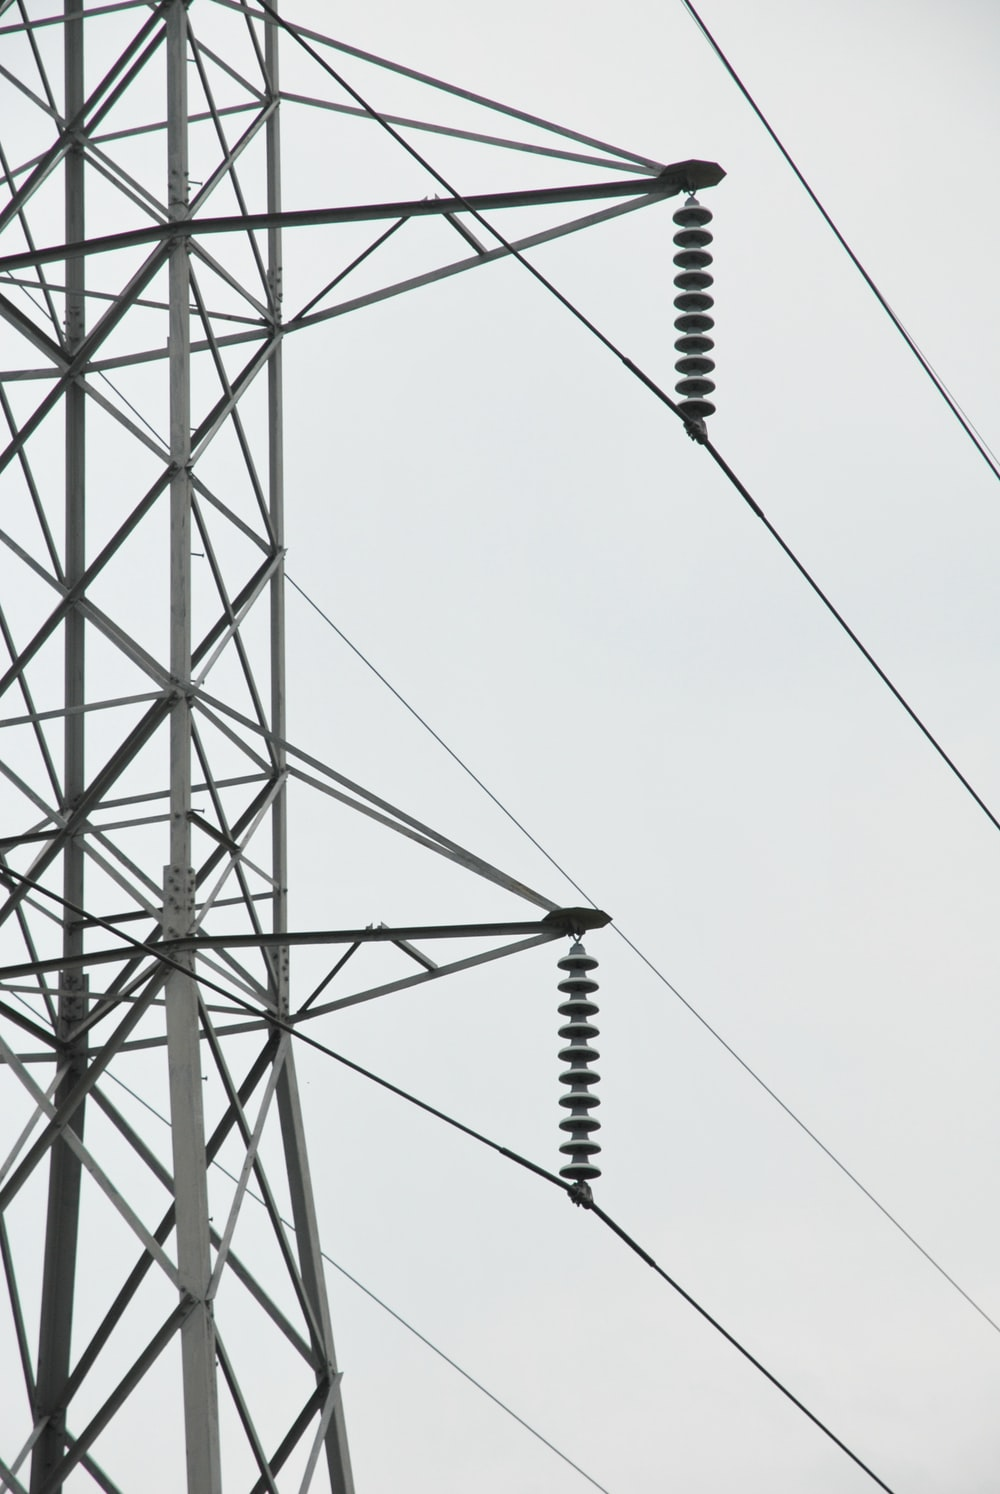 black metal electric tower under white sky